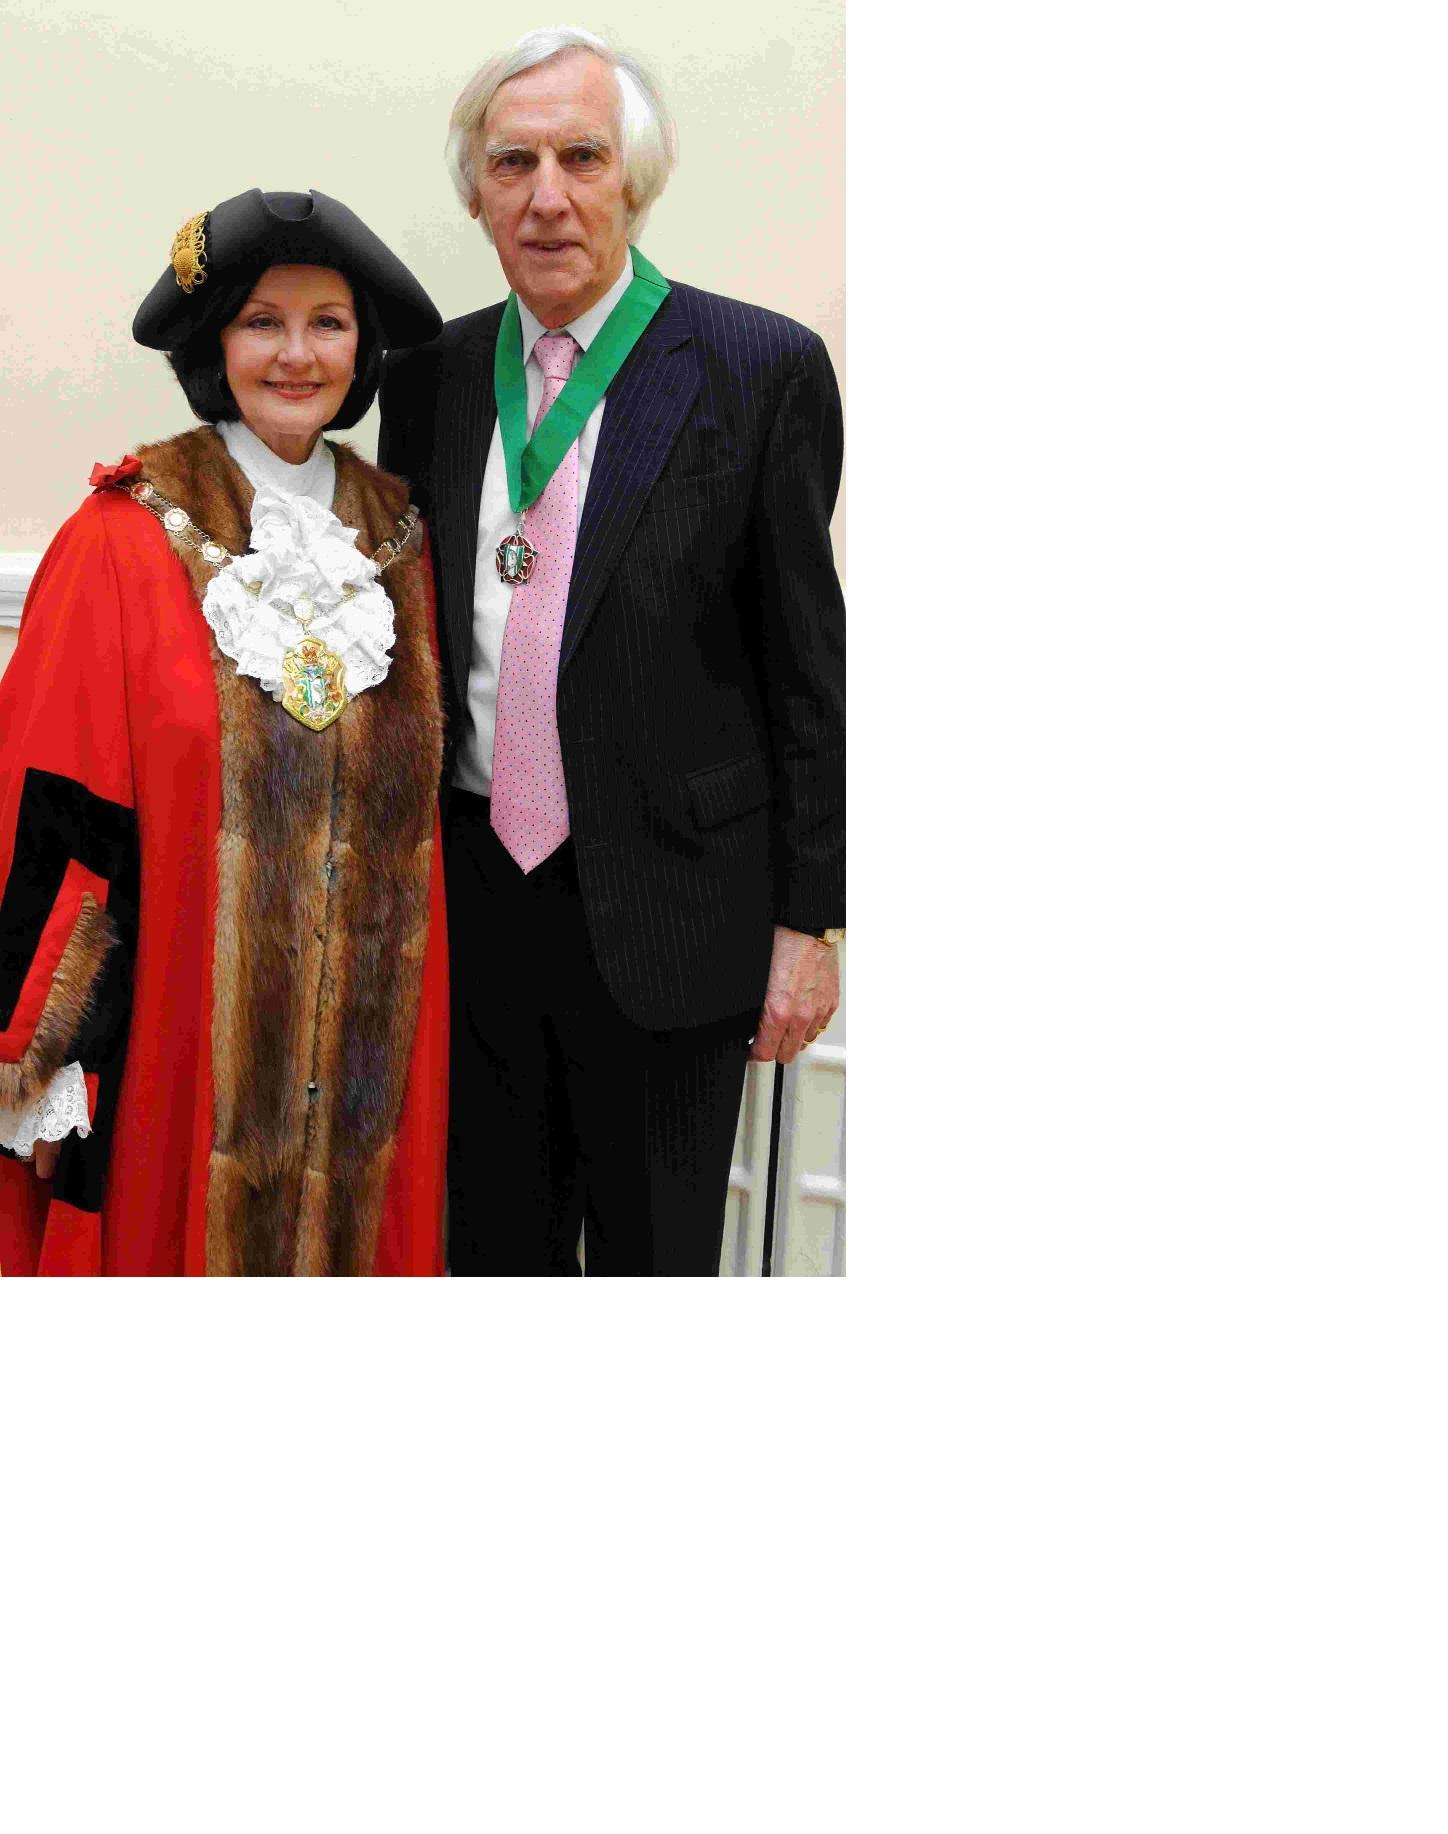 Janet and Neville Whiteley at Mrs Whitely's installation as Test Valley mayor in 2013